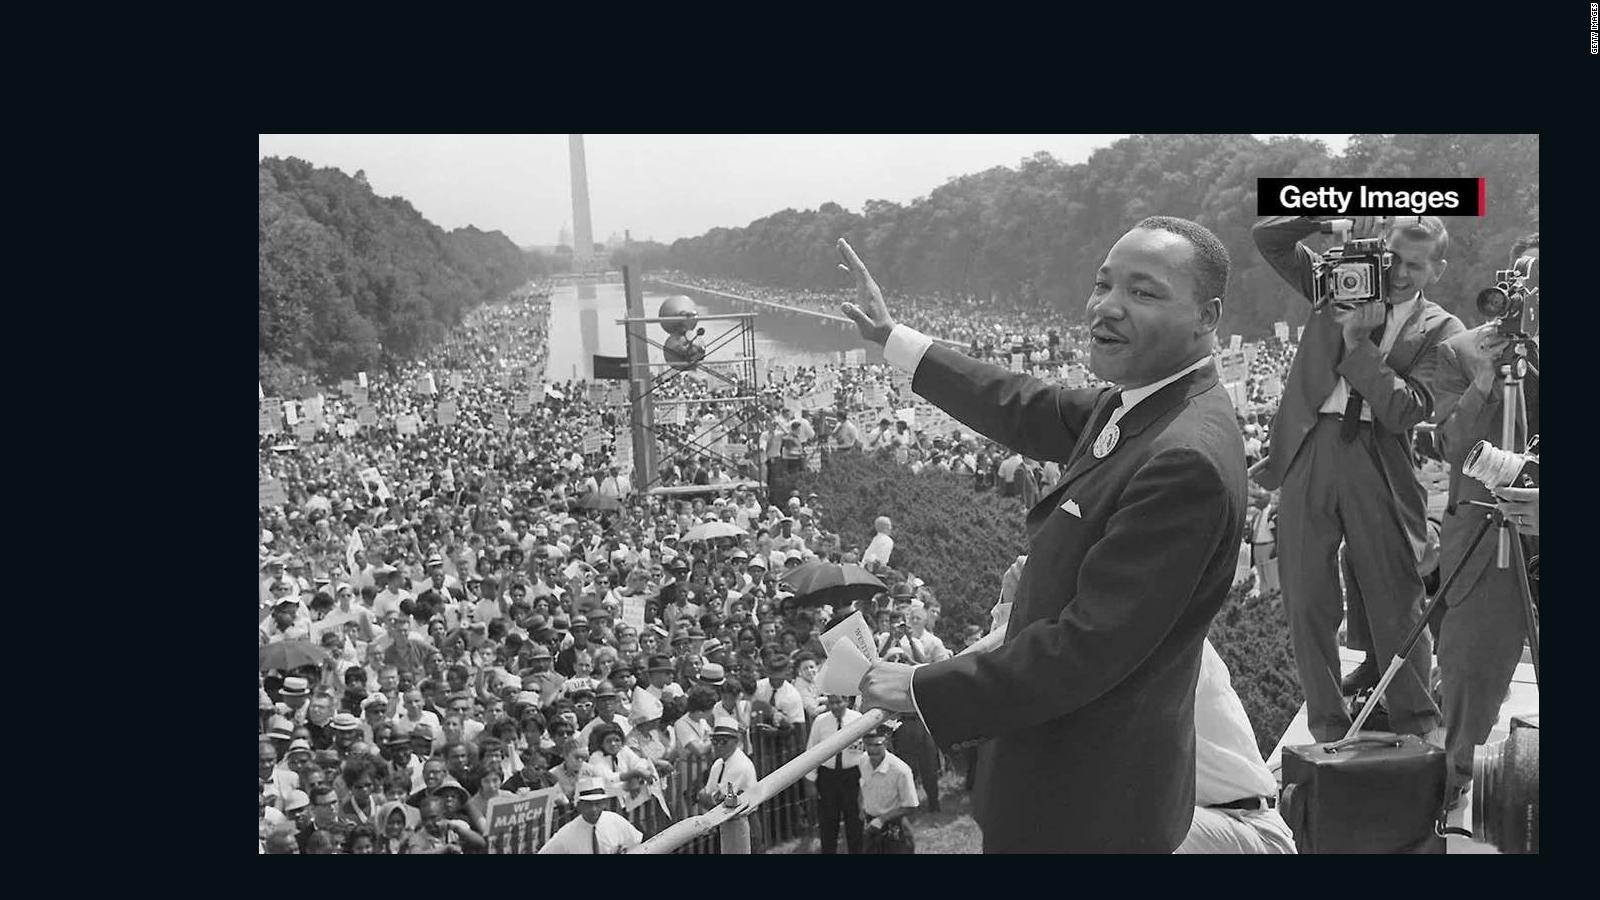 Research Essay Proposal Example I Have A Dream  Historical Facts About Mlks Speech And March  Cnn Examples Of A Proposal Essay also Thesis Statement Descriptive Essay I Have A Dream  Historical Facts About Mlks Speech And March  Cnn Thesis In Essay